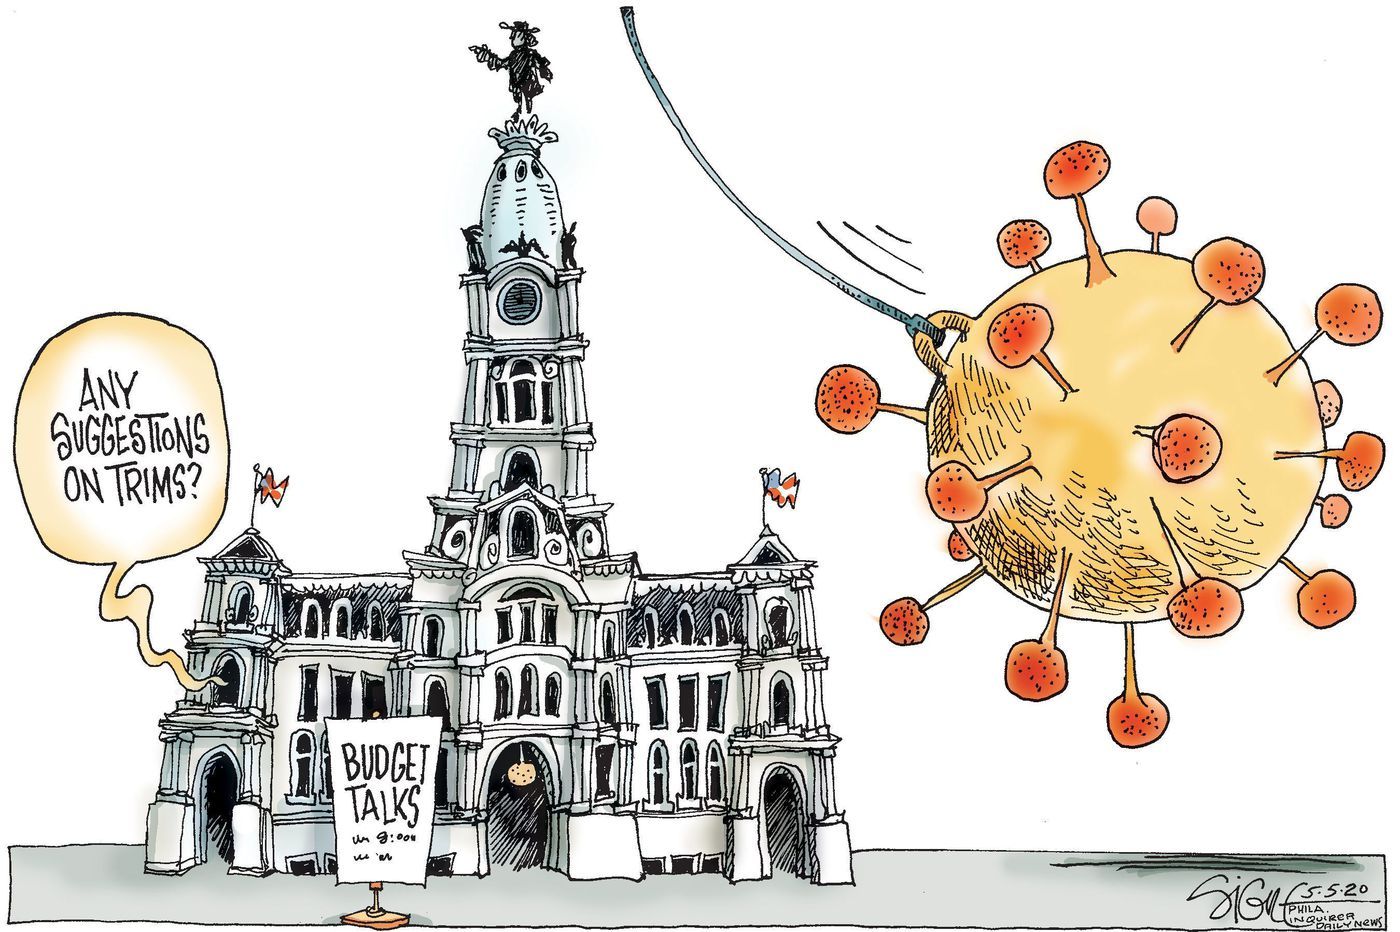 Political Cartoon: Philadelphia's coronavirus budget trimmer